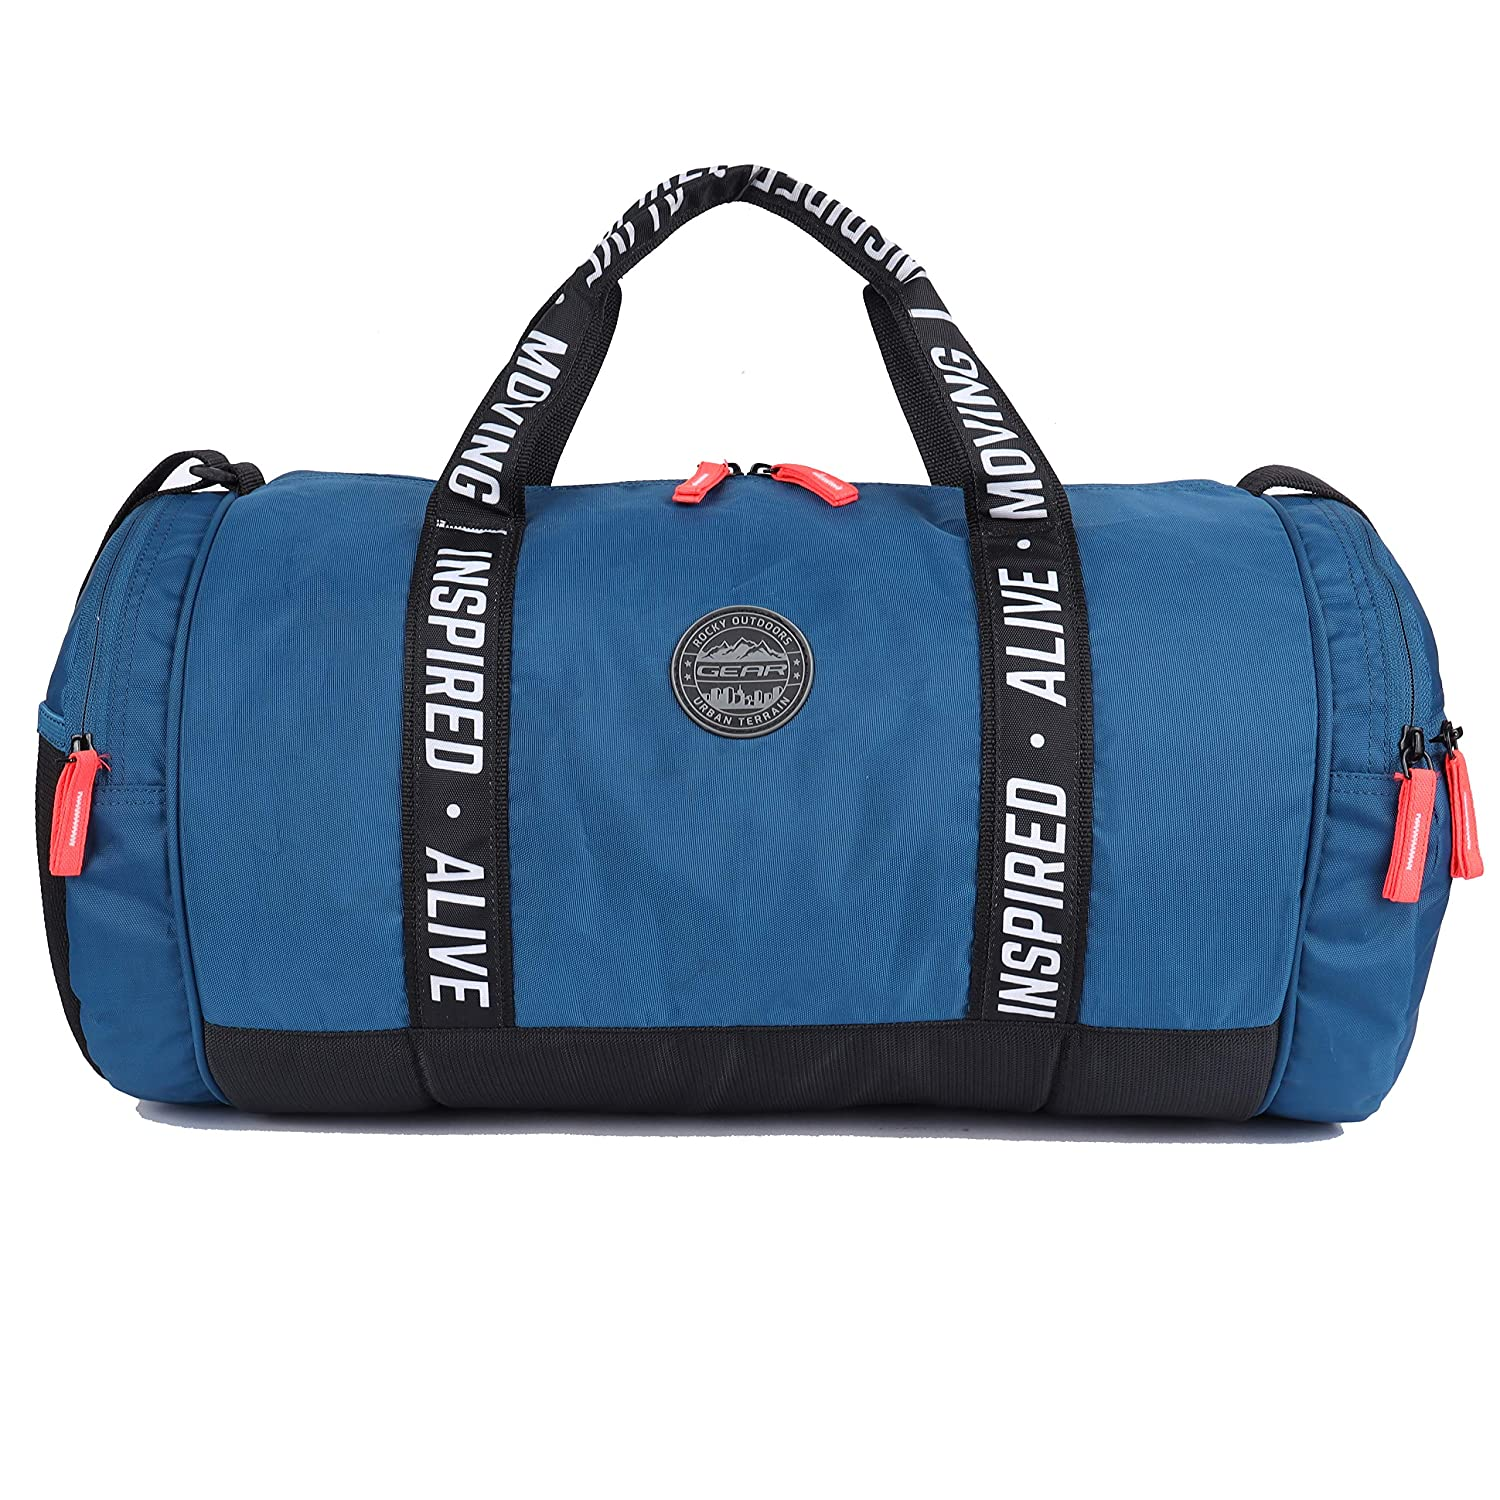 Gear Inspired Duffle Bag for gym